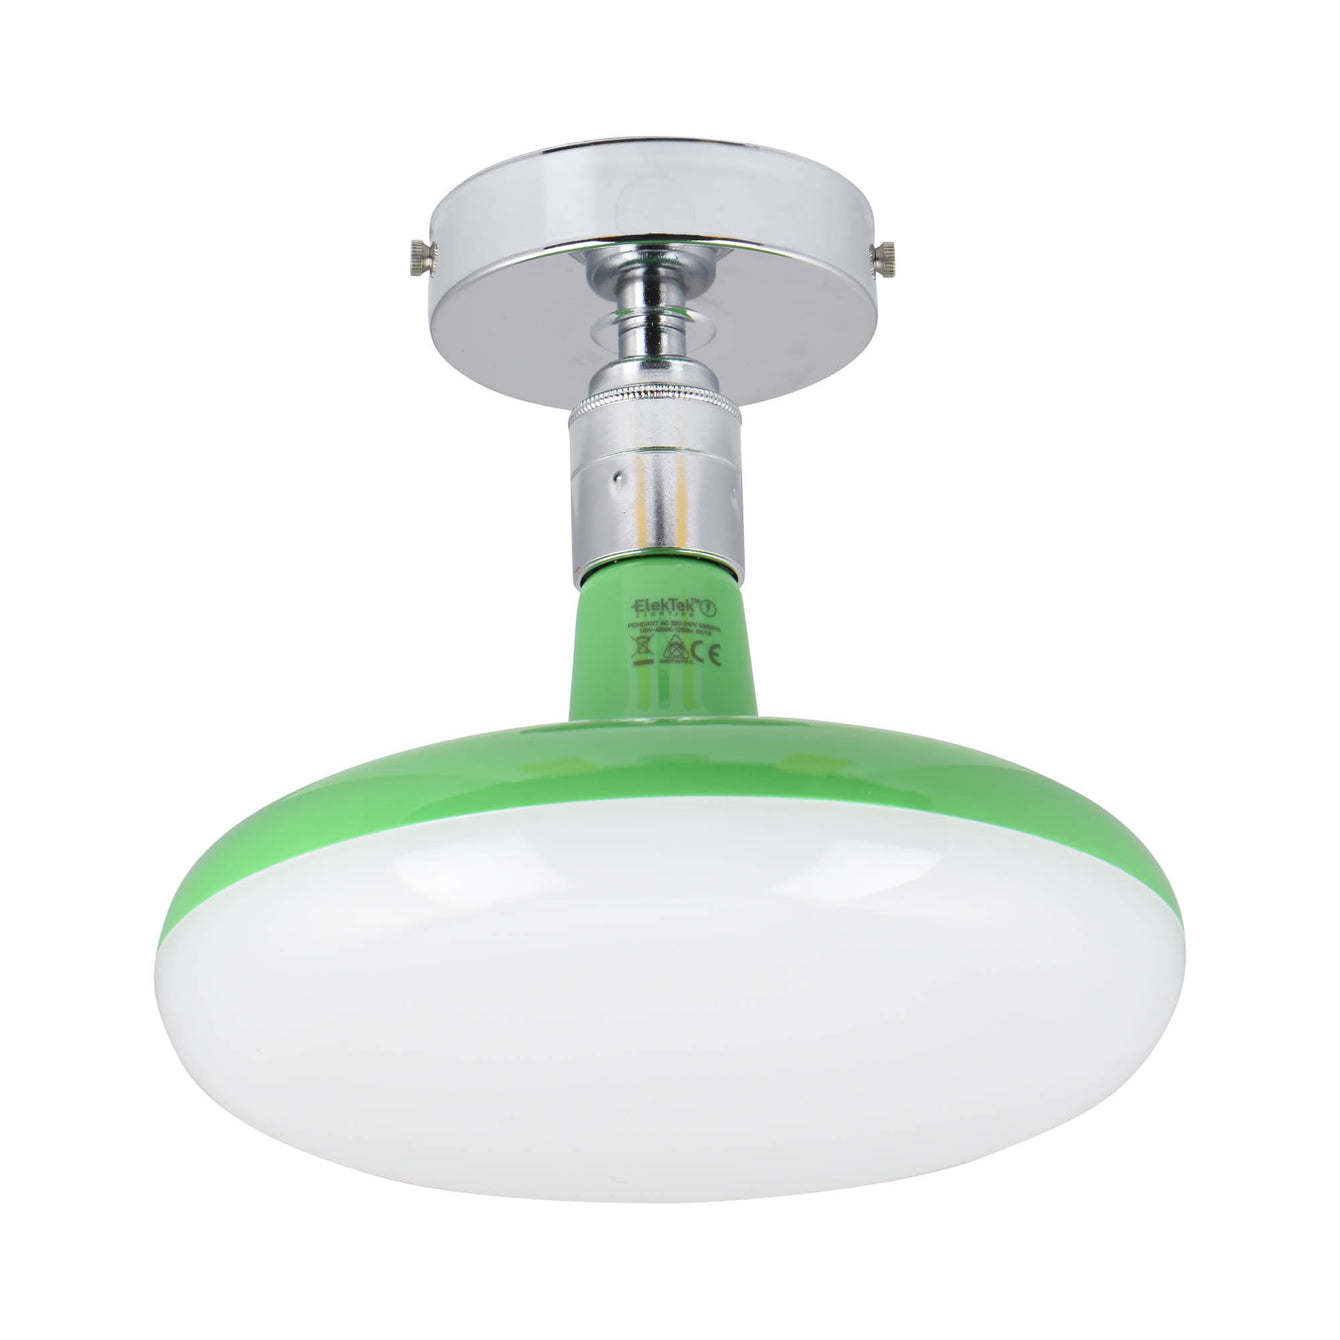 ElekTek Axmar Compact Ceiling Pendant Light Set Ideal for Lower Ceilings with 12 or 18 watt LED Lamp Colours - Buy It Better White / Turquoise / 18 W